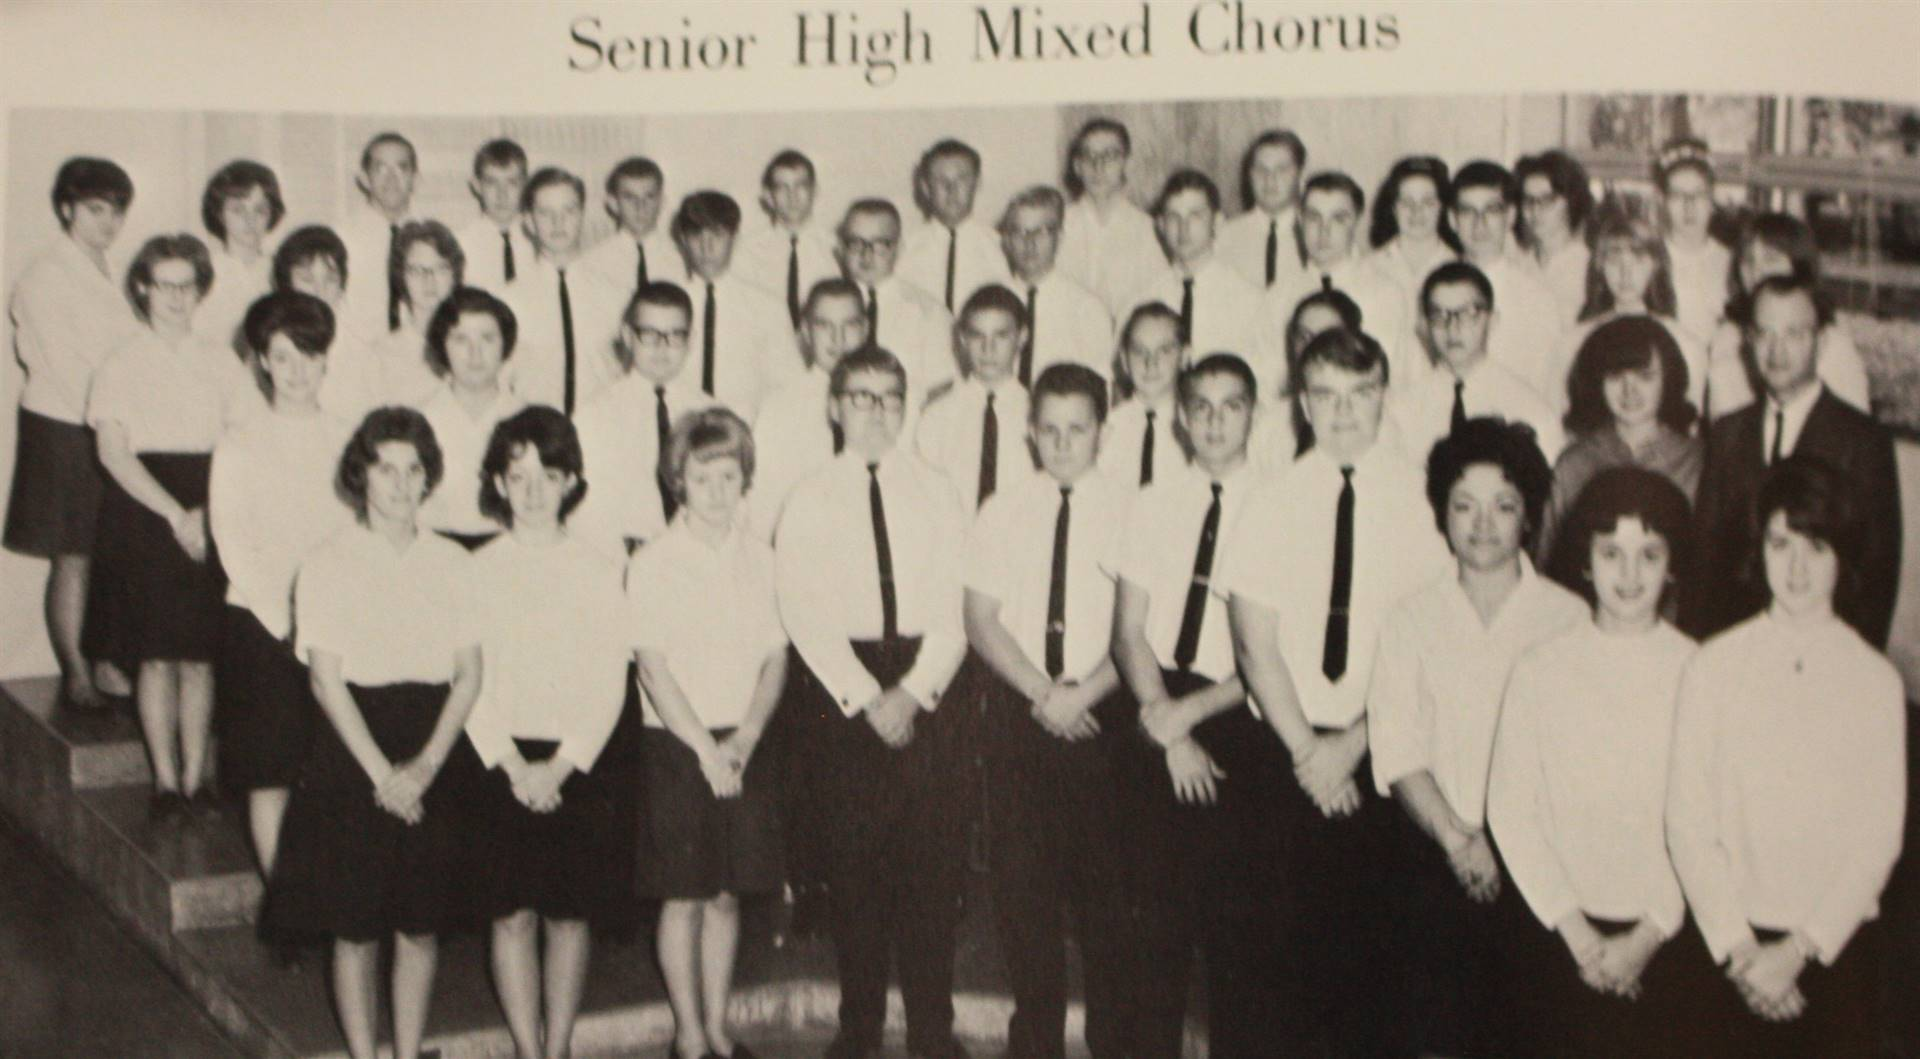 1966 Senior High Mixed Chorus